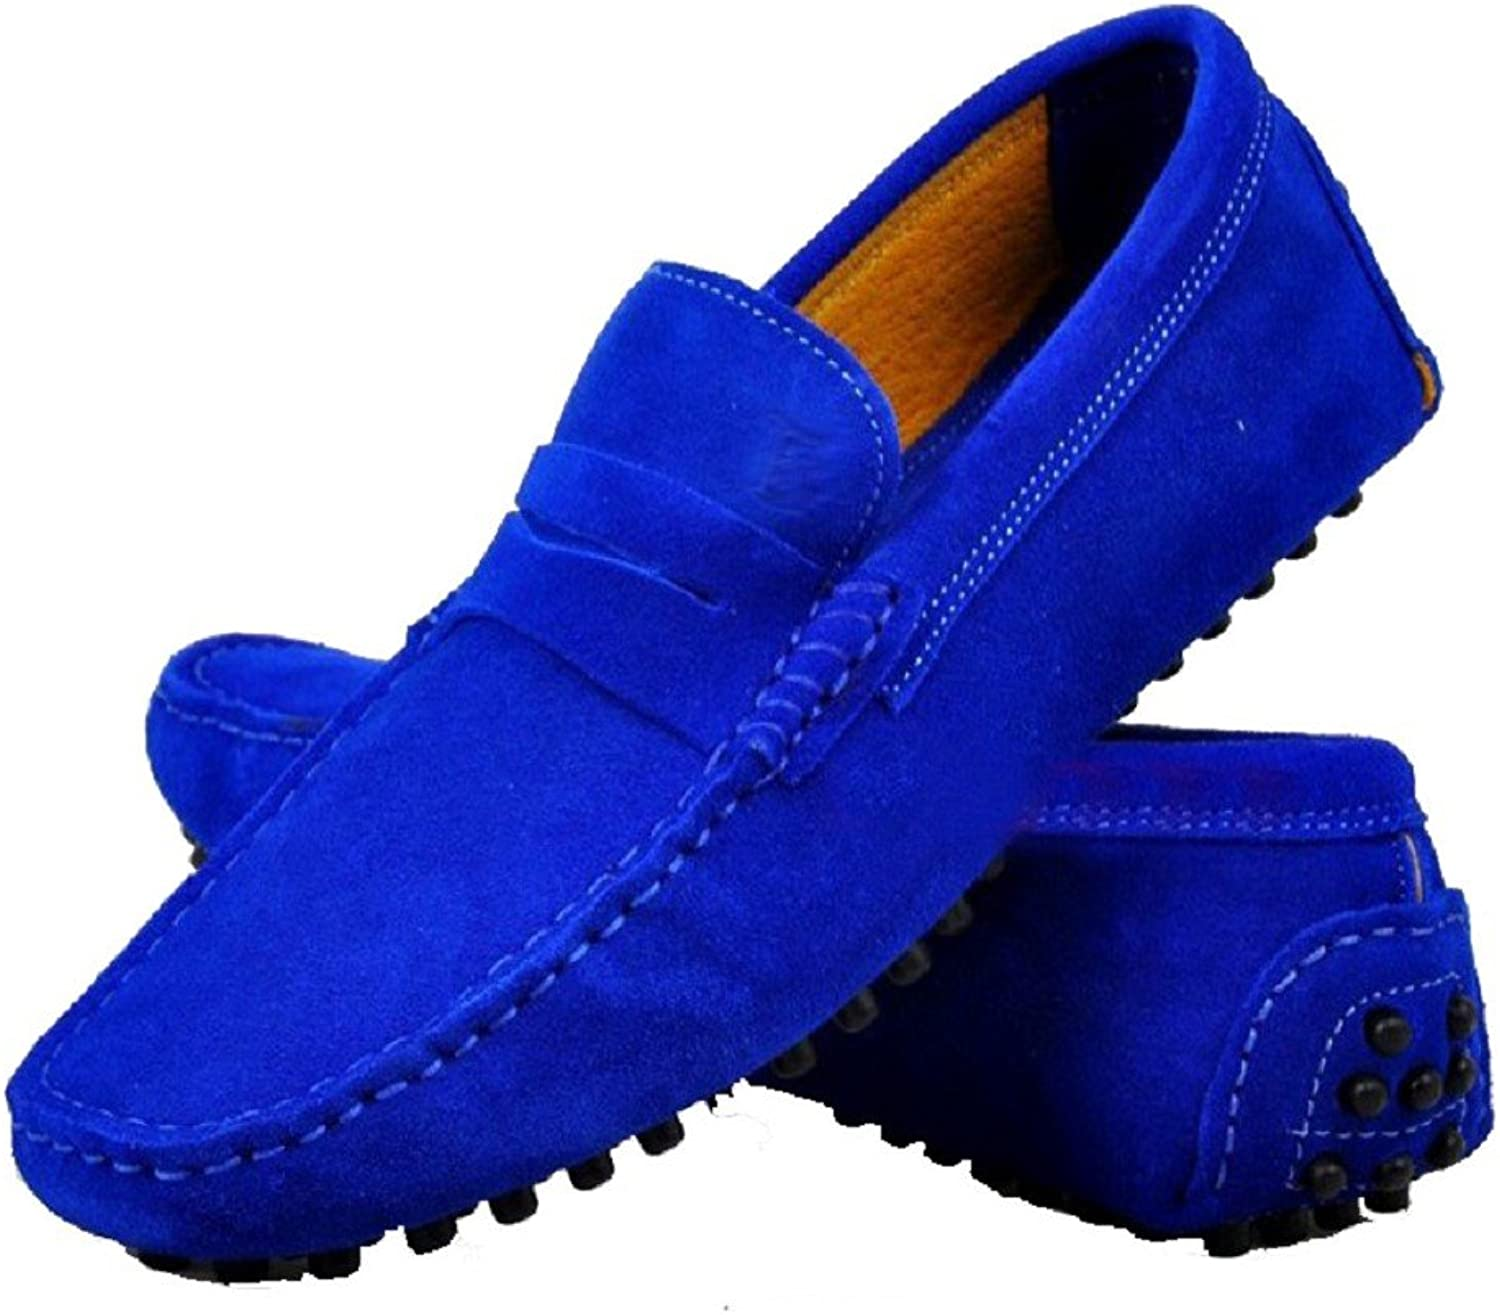 Cover Plus 9 color Fashion Suede Leather Mens Casual Slip On Driving Moccasin Penny Loafers Flats shoes